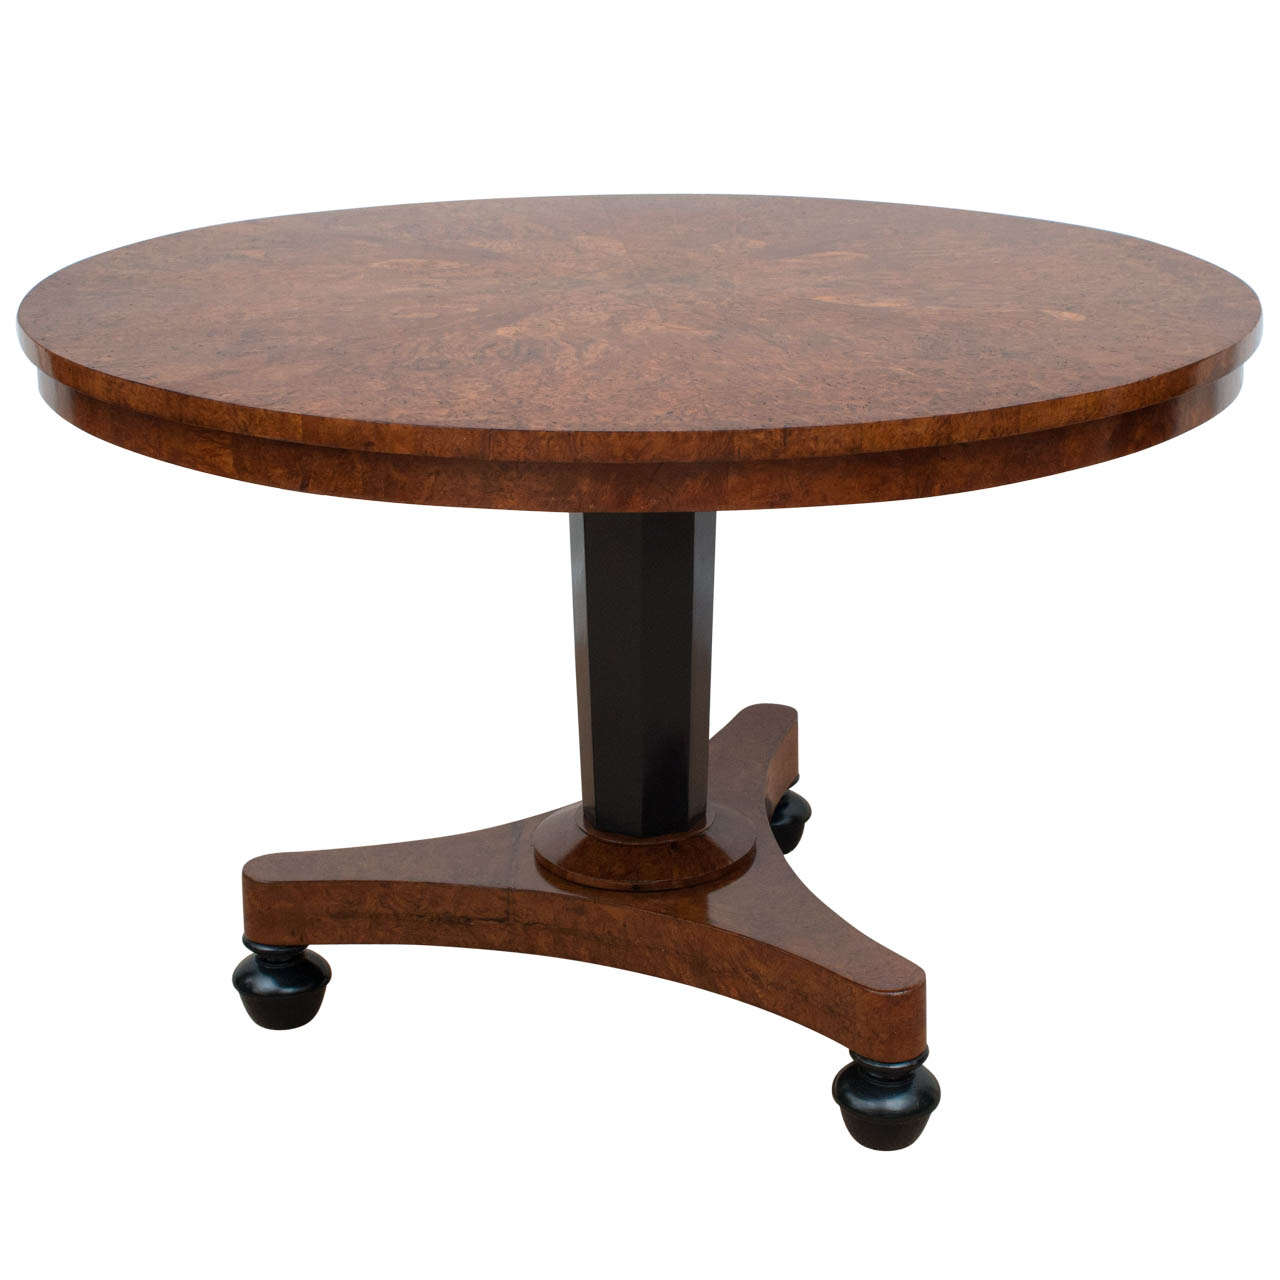 19th century english pollard oak center table at 1stdibs for Table th center text